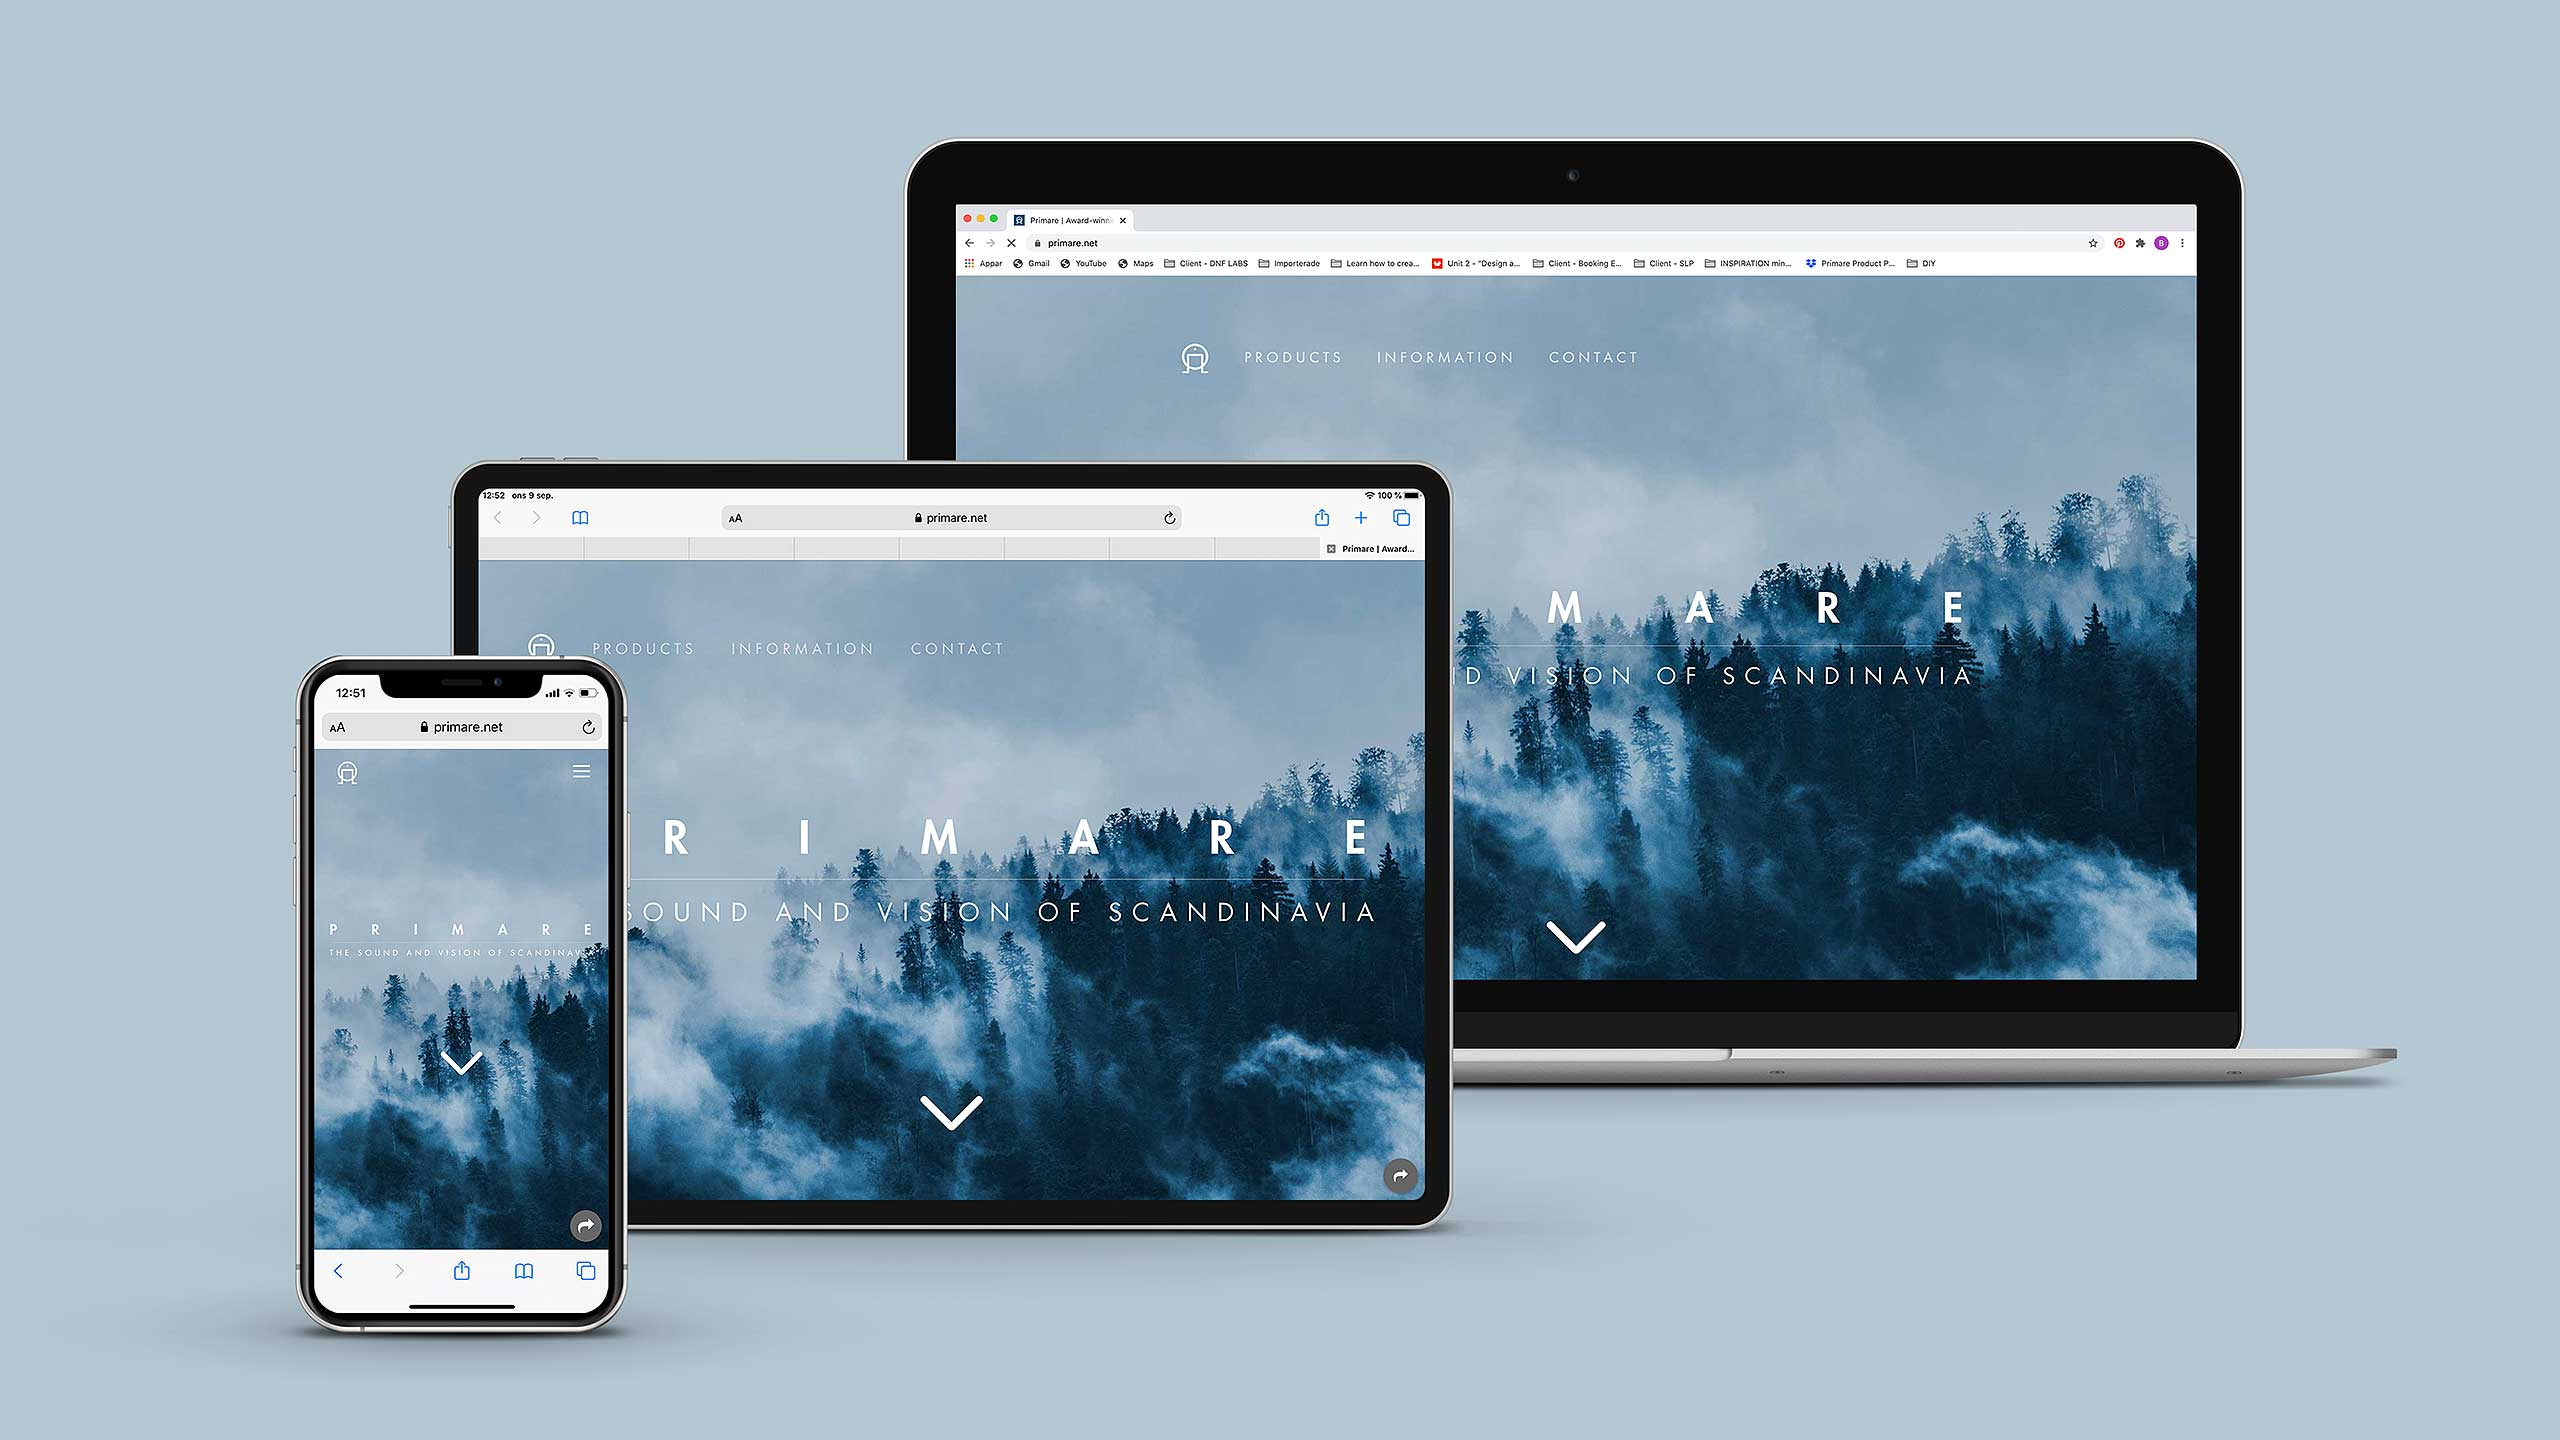 Photo of Primare site on iPhone, iPad and computer